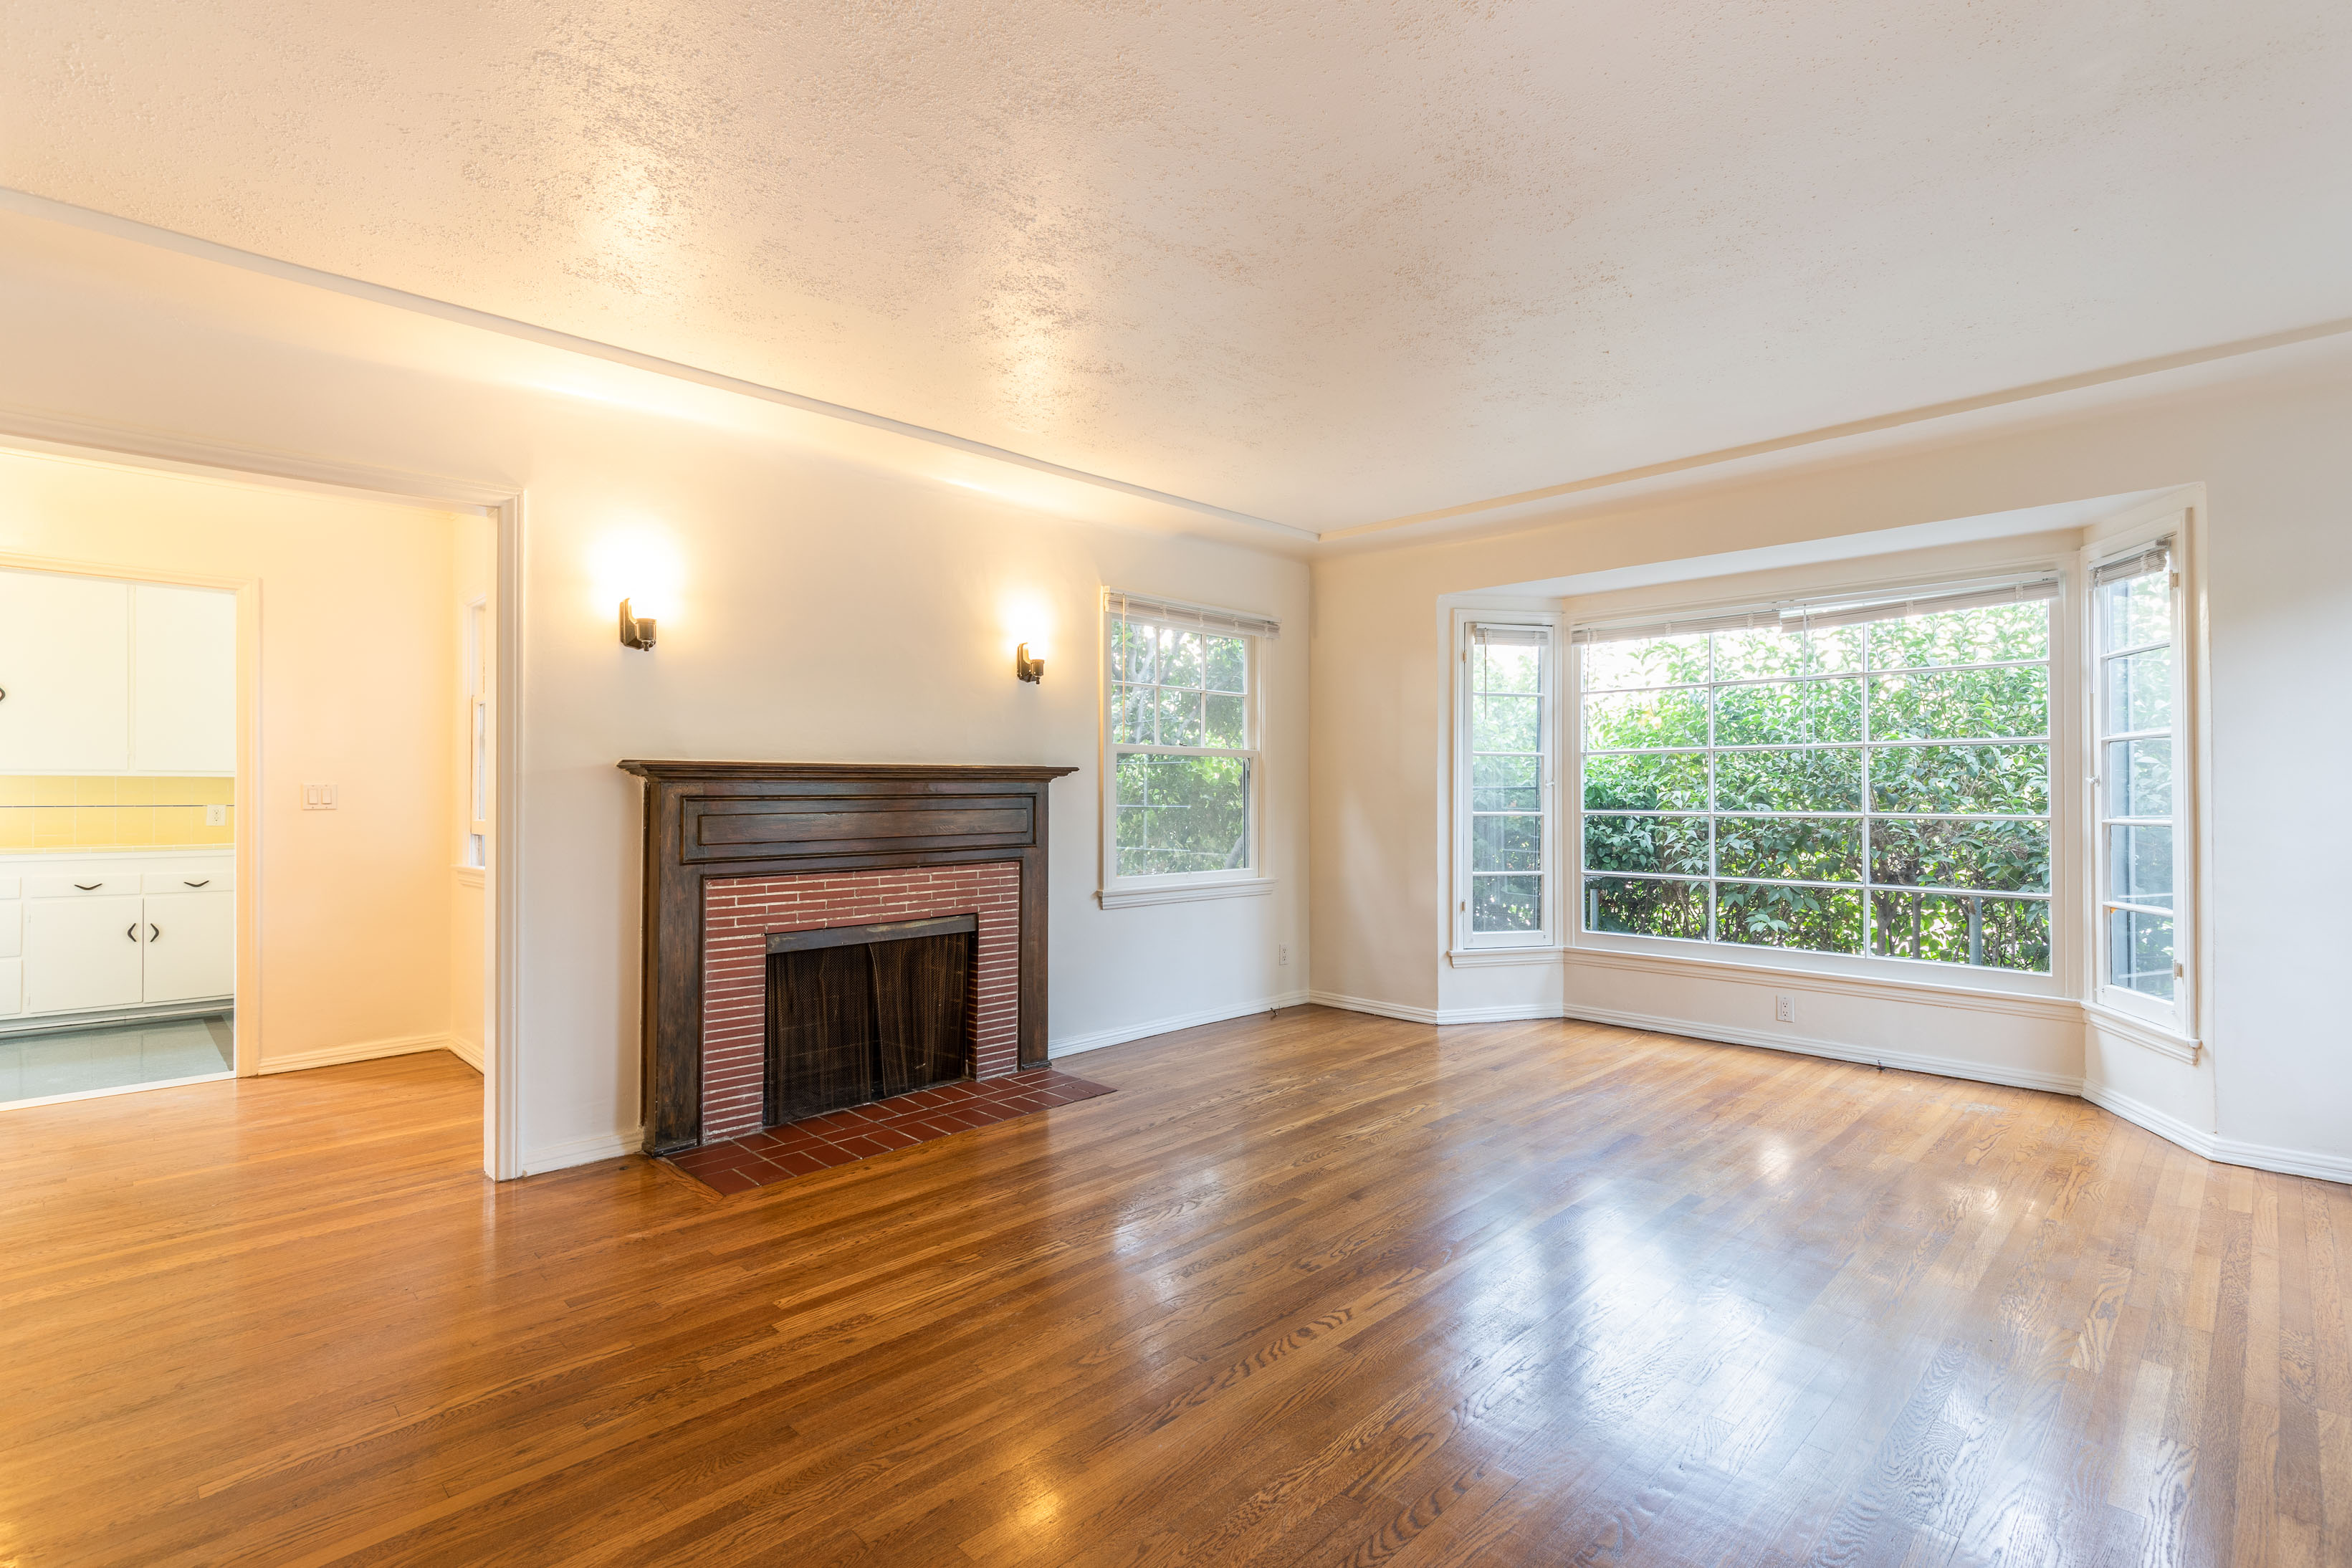 Spacious 1940'sBeaut! | Vintage Details |Shared Backyard | Prime Silver Lake Location - A Block From Sunset!